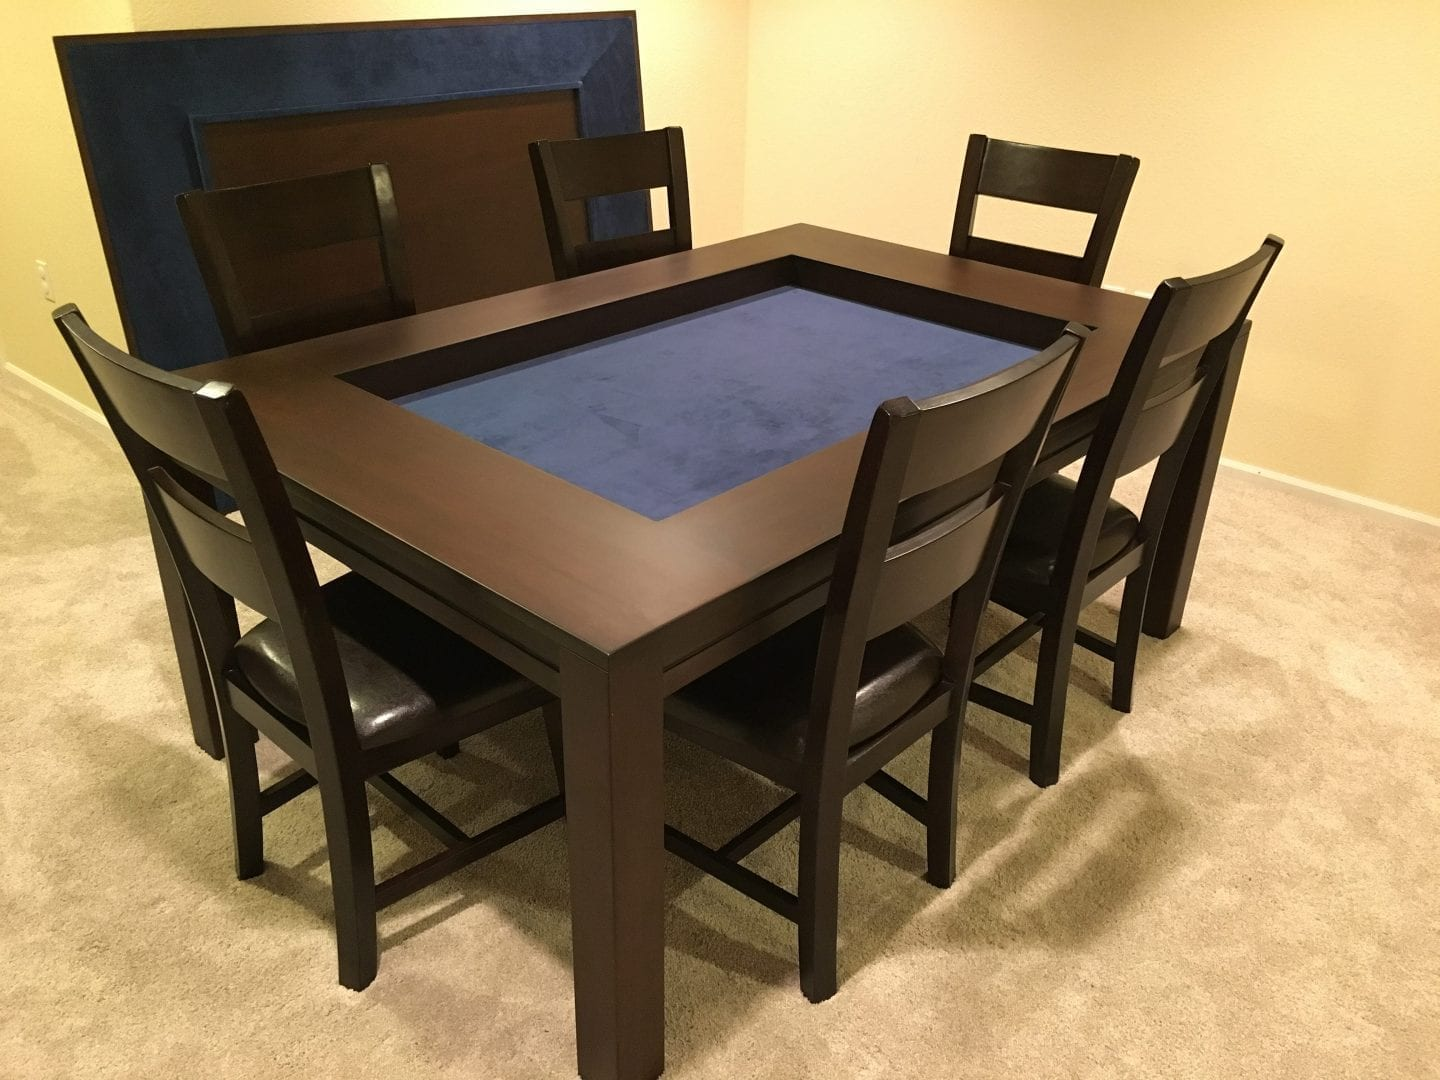 Shown In Sagamore Hill Finish And Dark Blue Fabric Thanks Ben